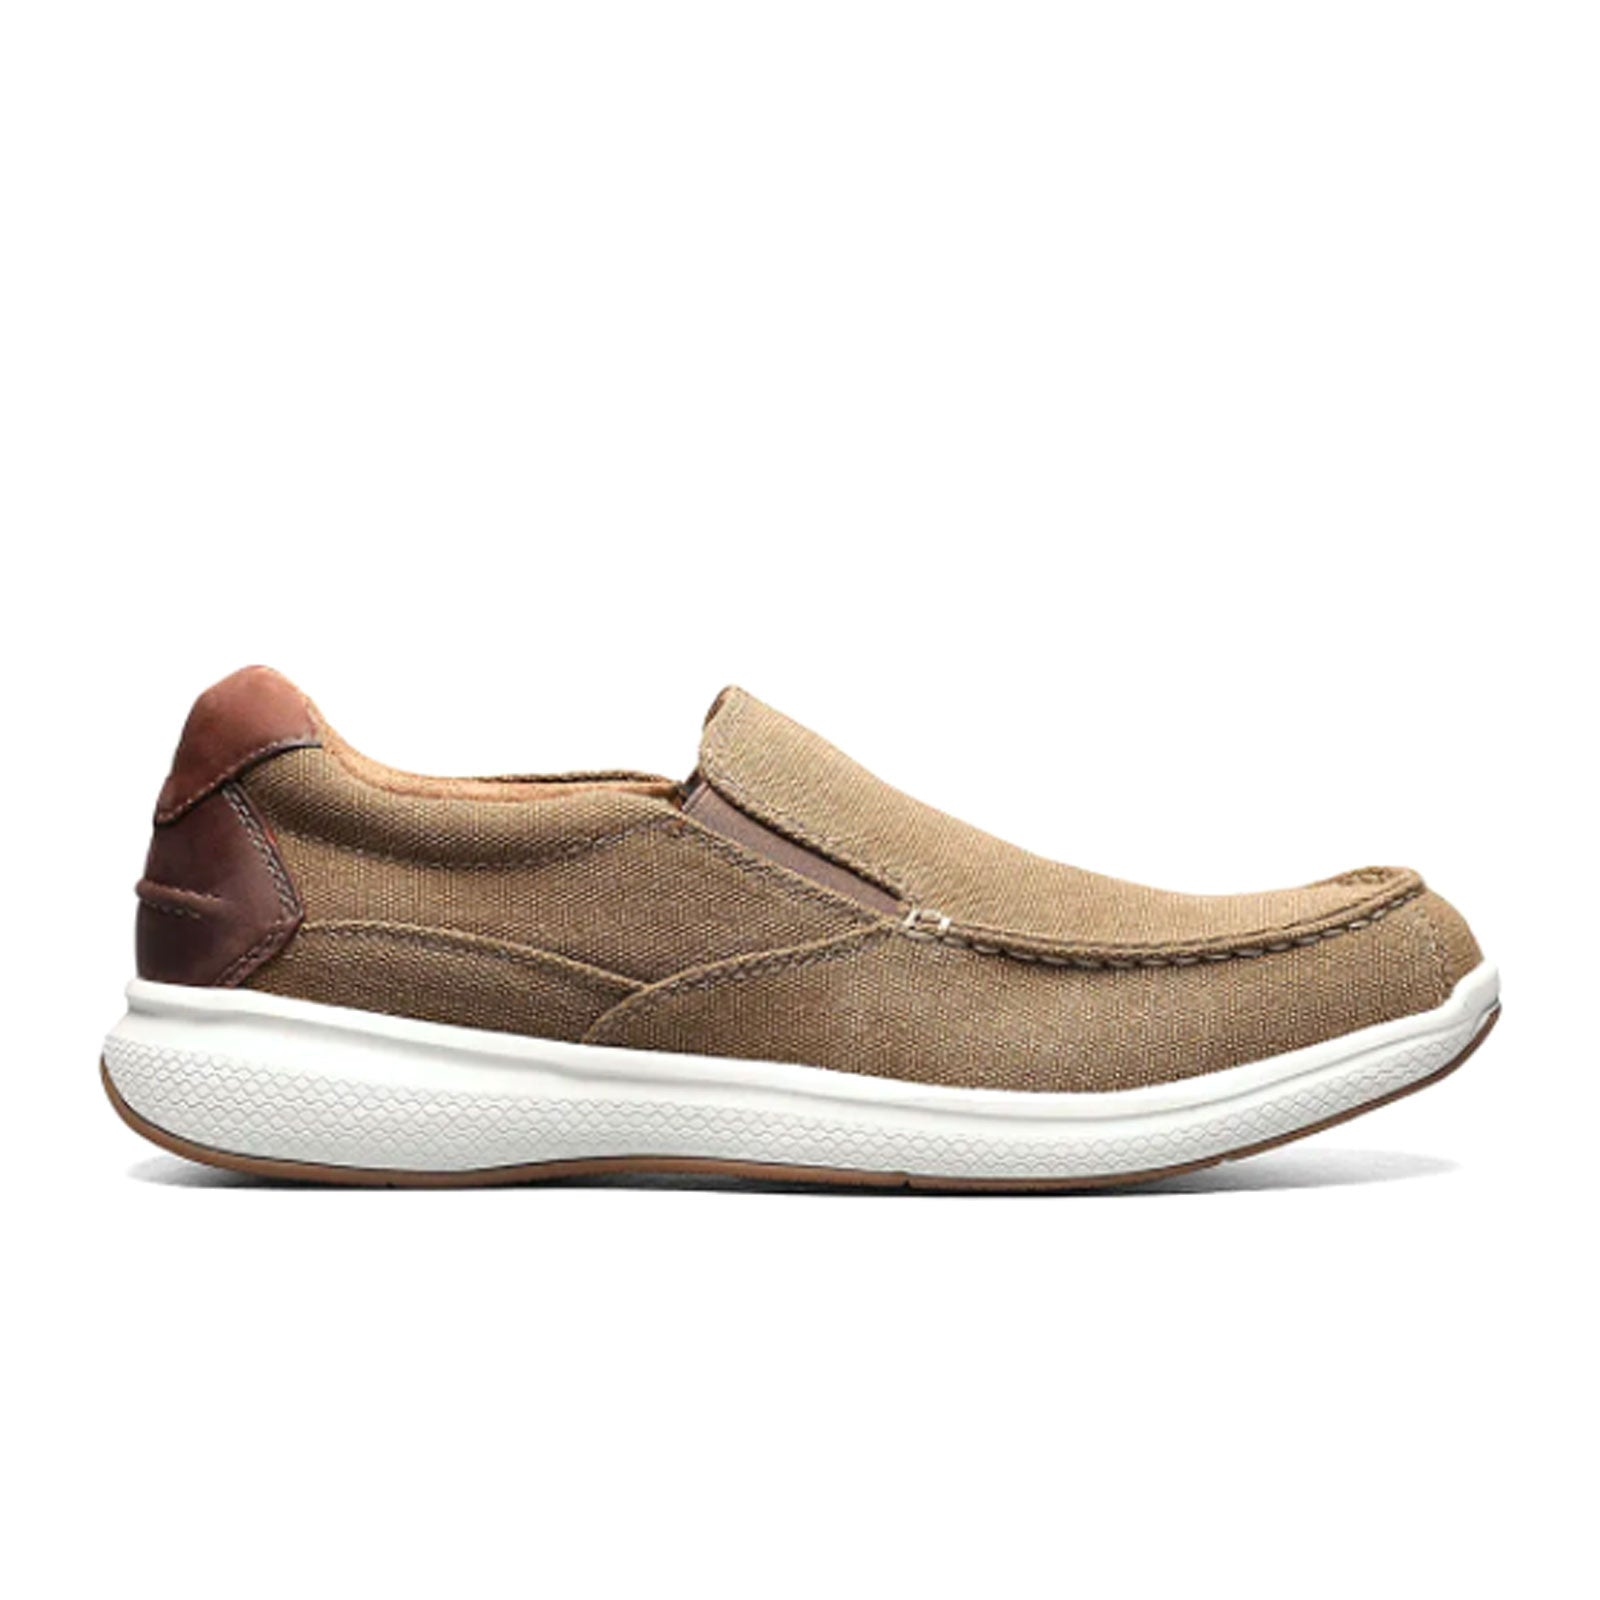 Florsheim Great Lakes Canvas Moc Toe (Men) - Sand Dress/Casual|Slip Ons - The Heel Shoe Fitters